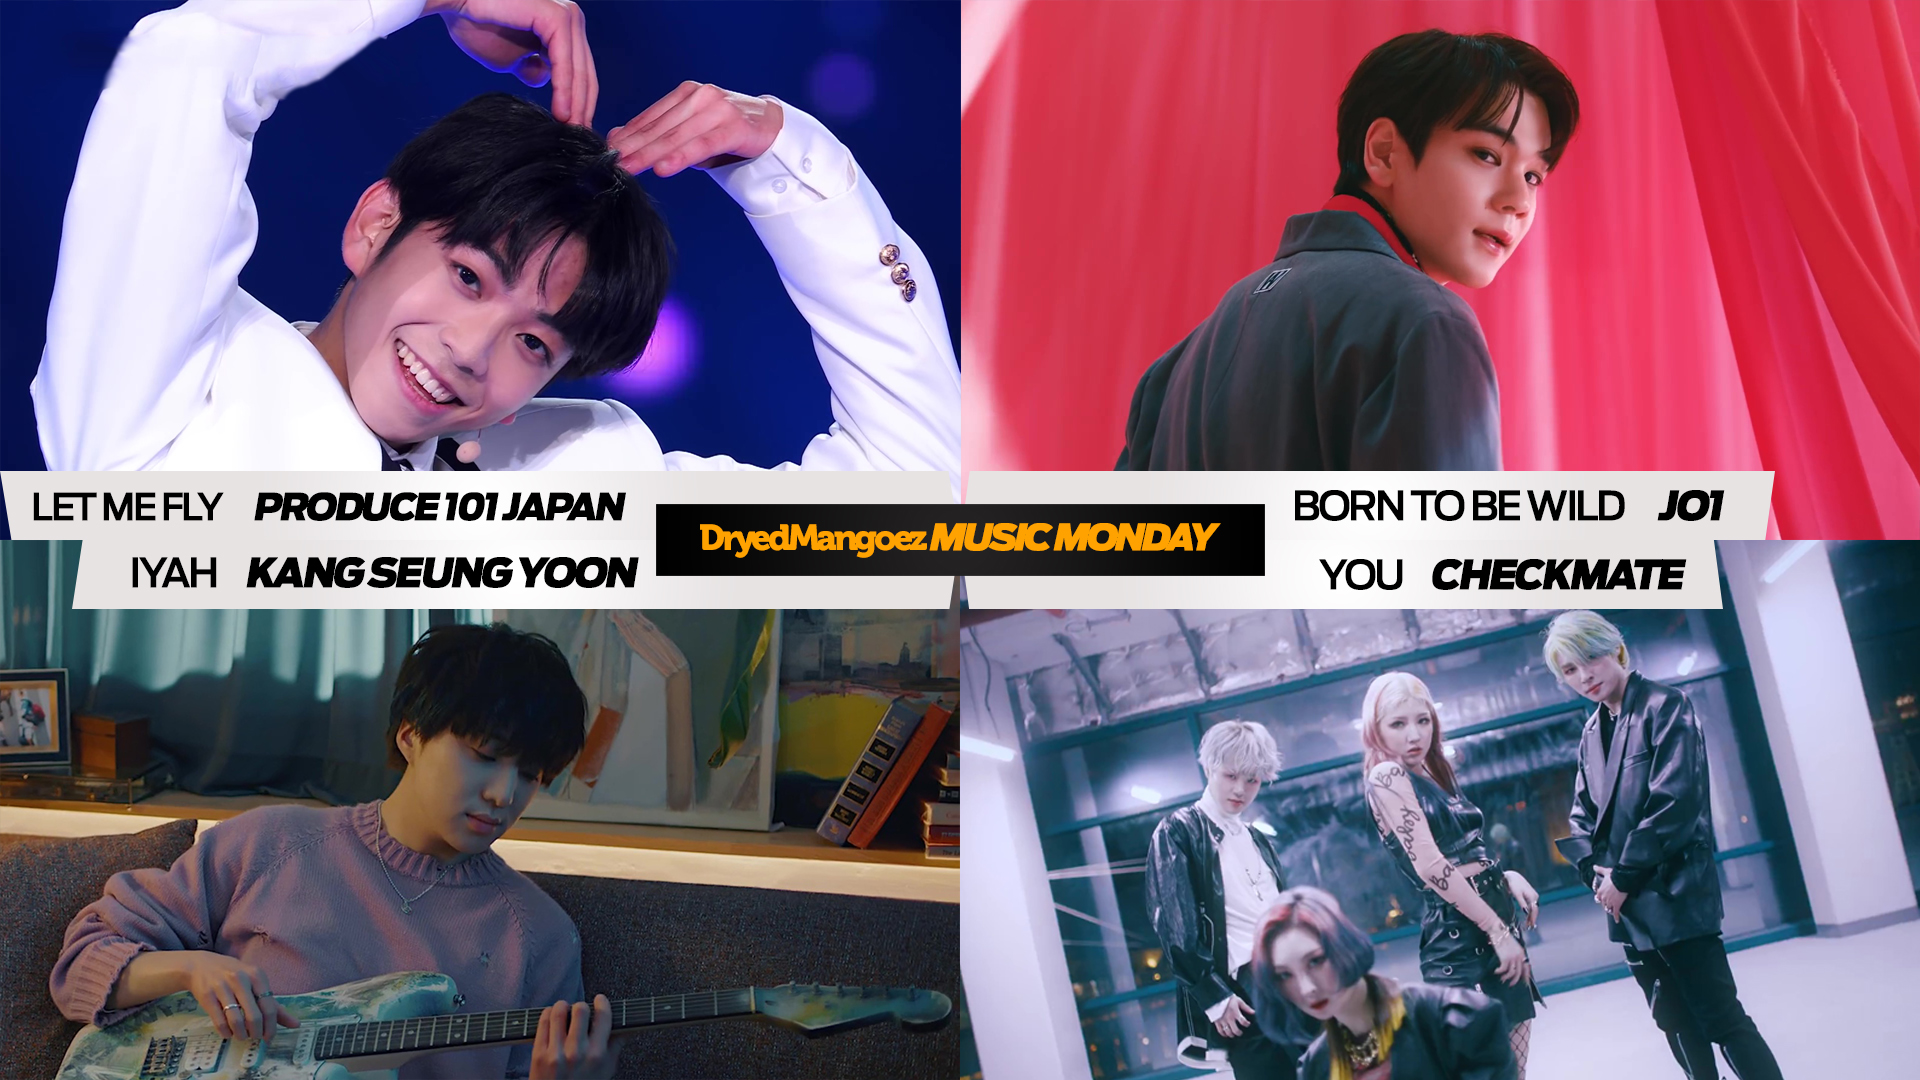 Music Monday, March 29, 2021 Extra – Produce 101 Japan Season 2, JO1, Kang Seung Yoon, CHECKMATE